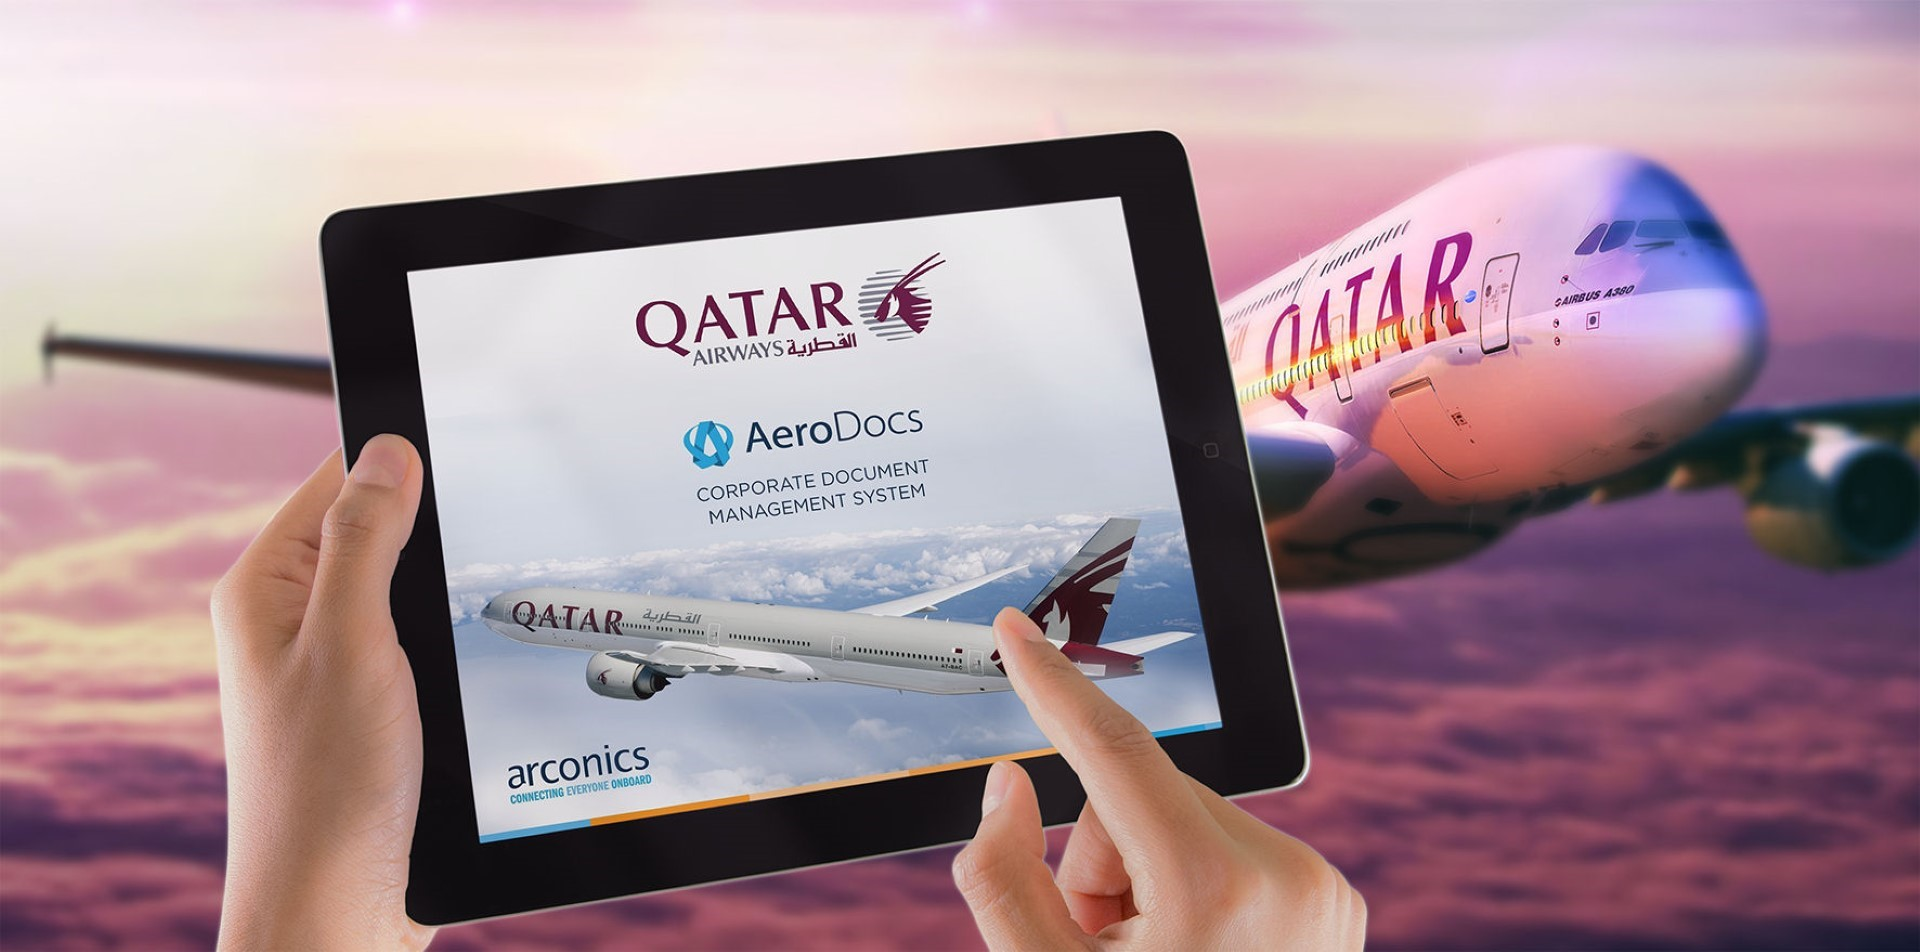 Qatar is close to the deployment of their AeroDocs System. Image: Arconics